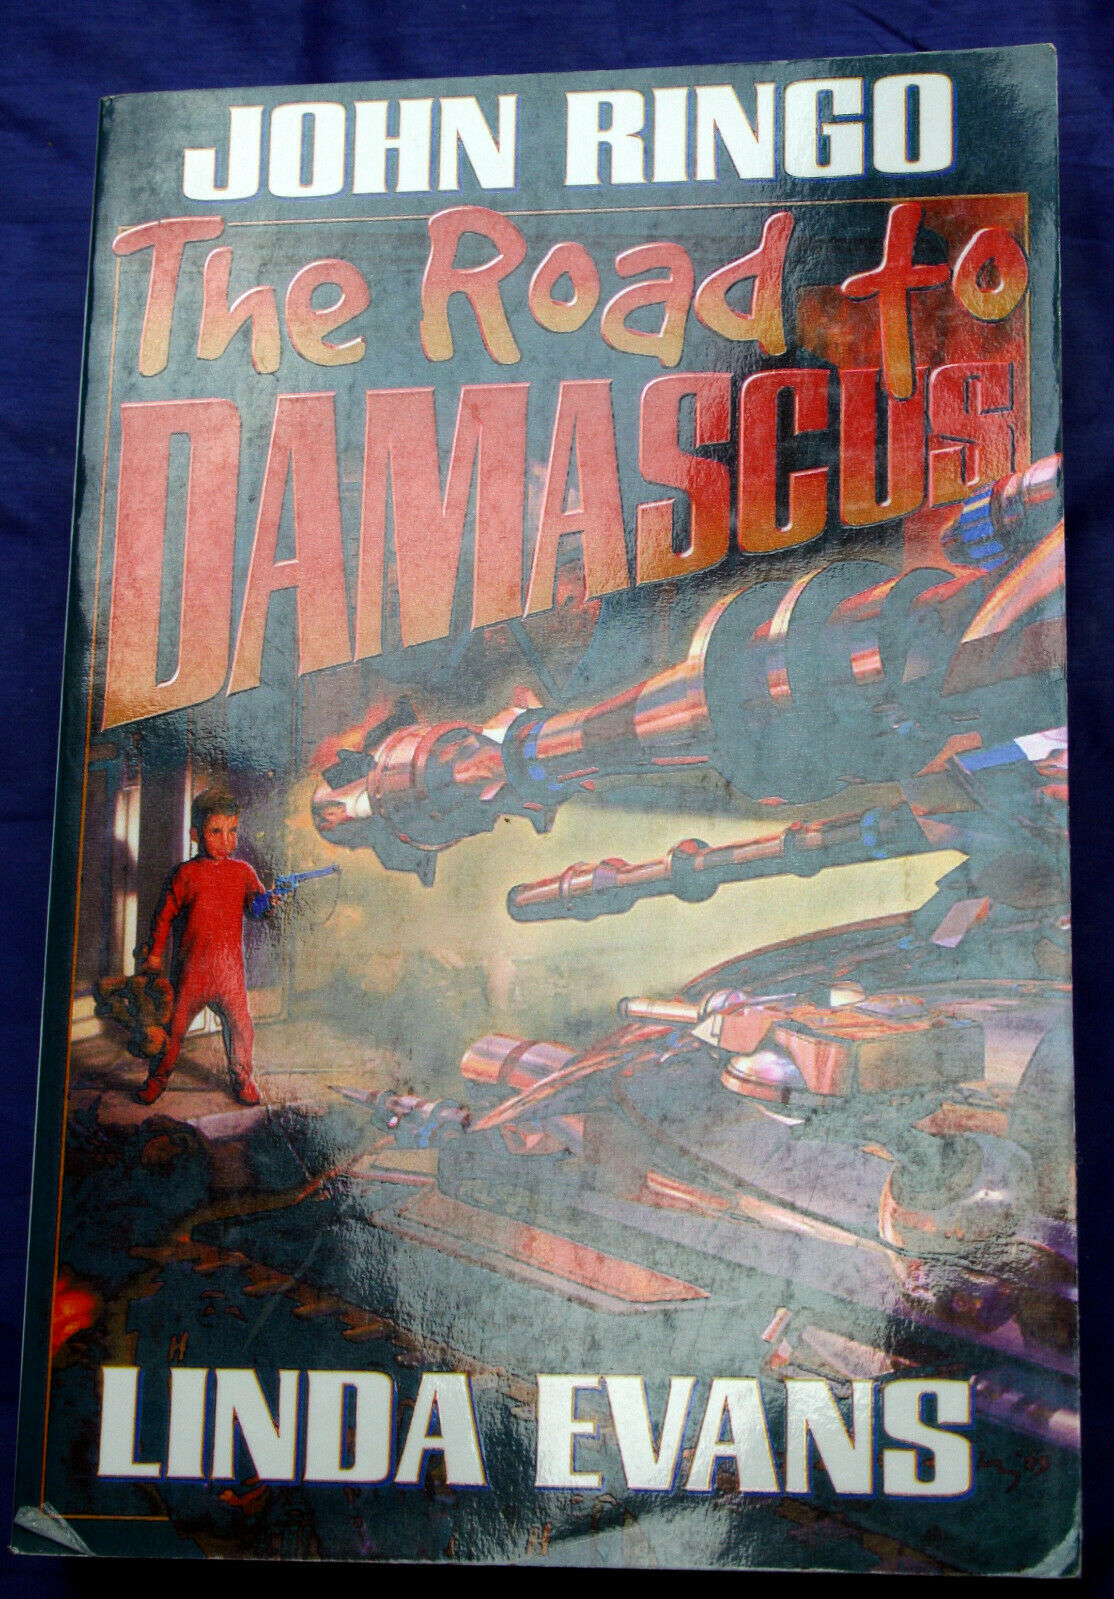 Primary image for John Ringo THE ROAD TO DAMASCUS Linda Evans uncorrected proof (BOLO)